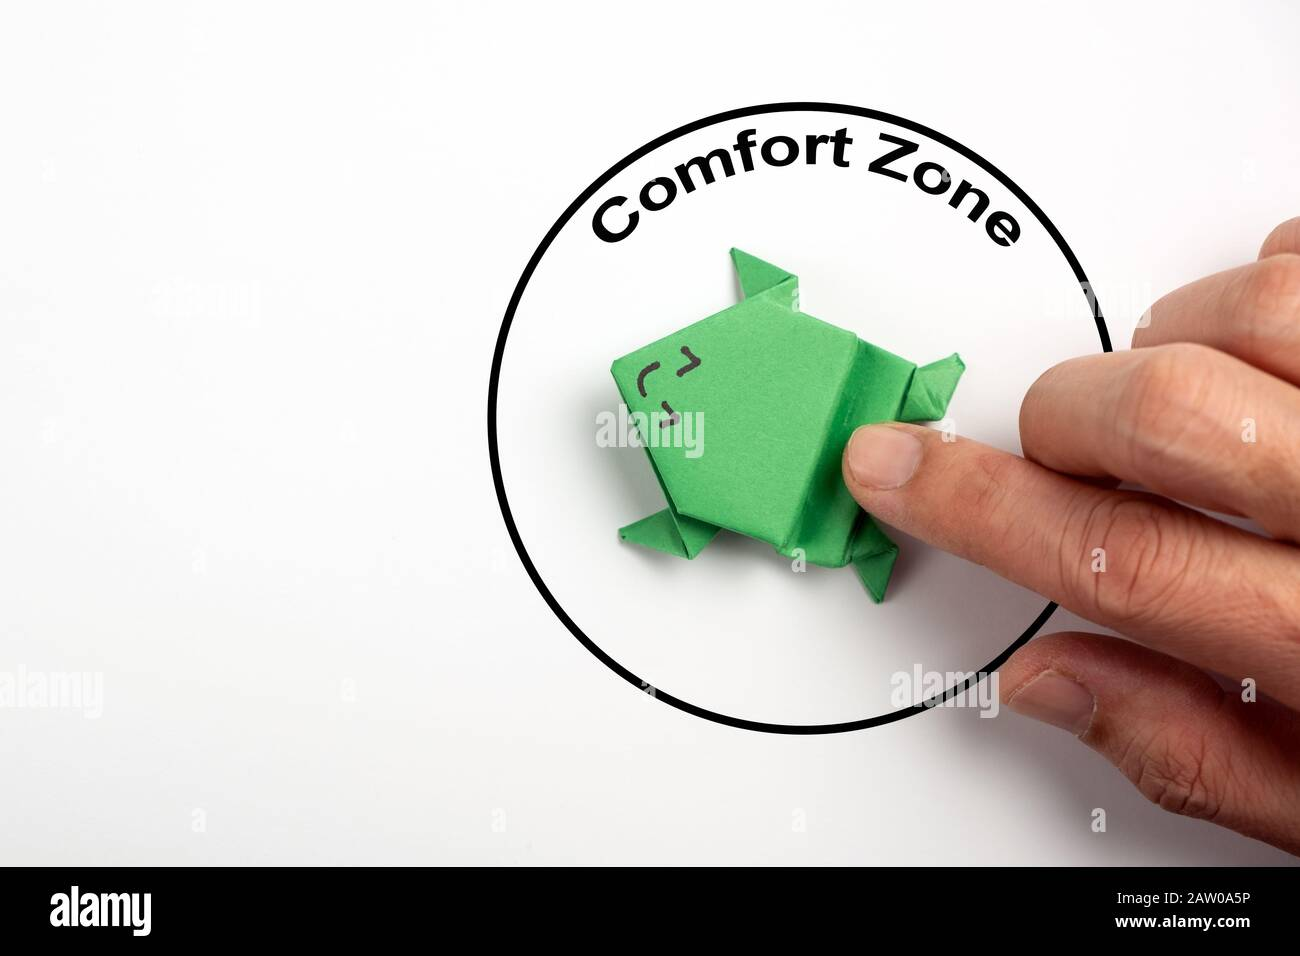 Step out from the comfort zone concept Stock Photo